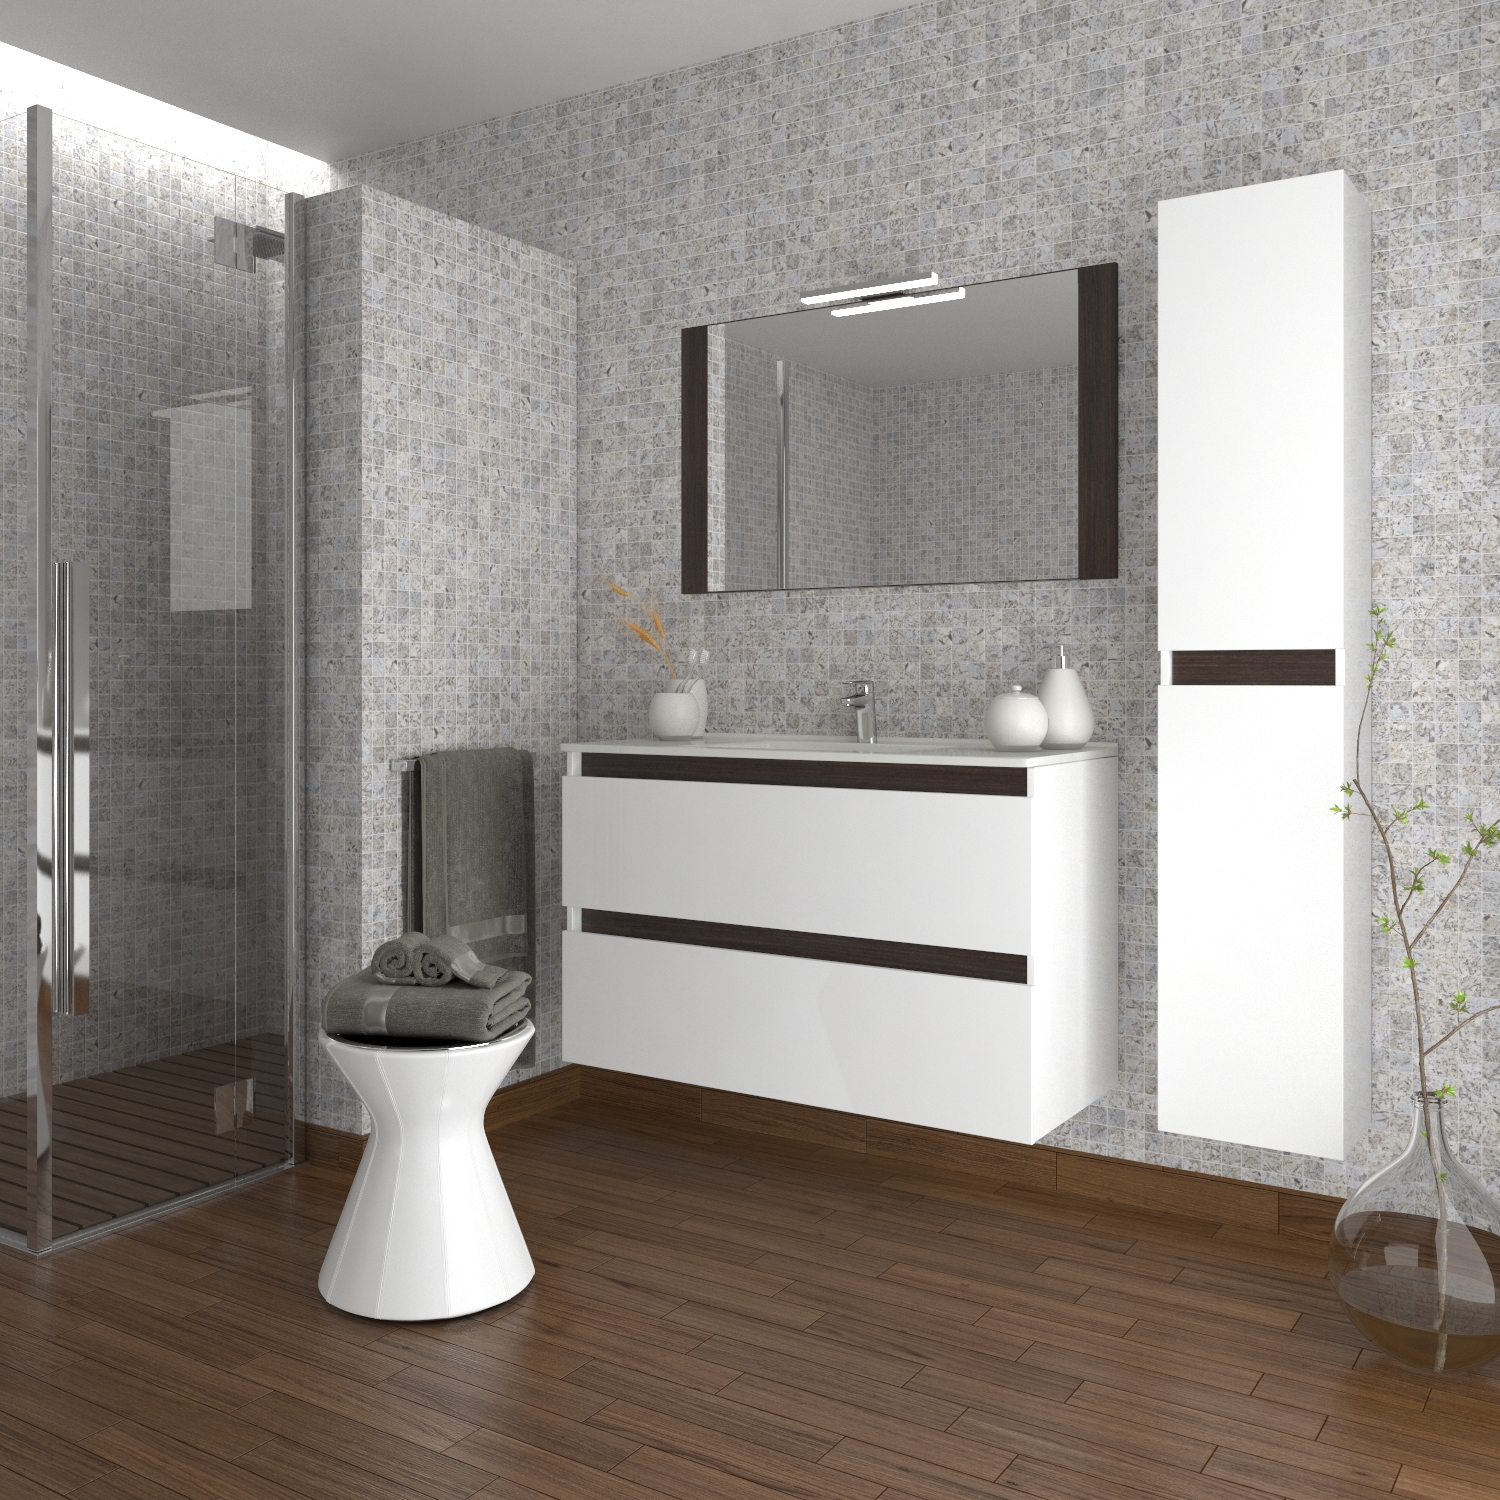 Bathroom Furniture Model Malaga Elegant With Fingernails # Muebles Jardin Malaga